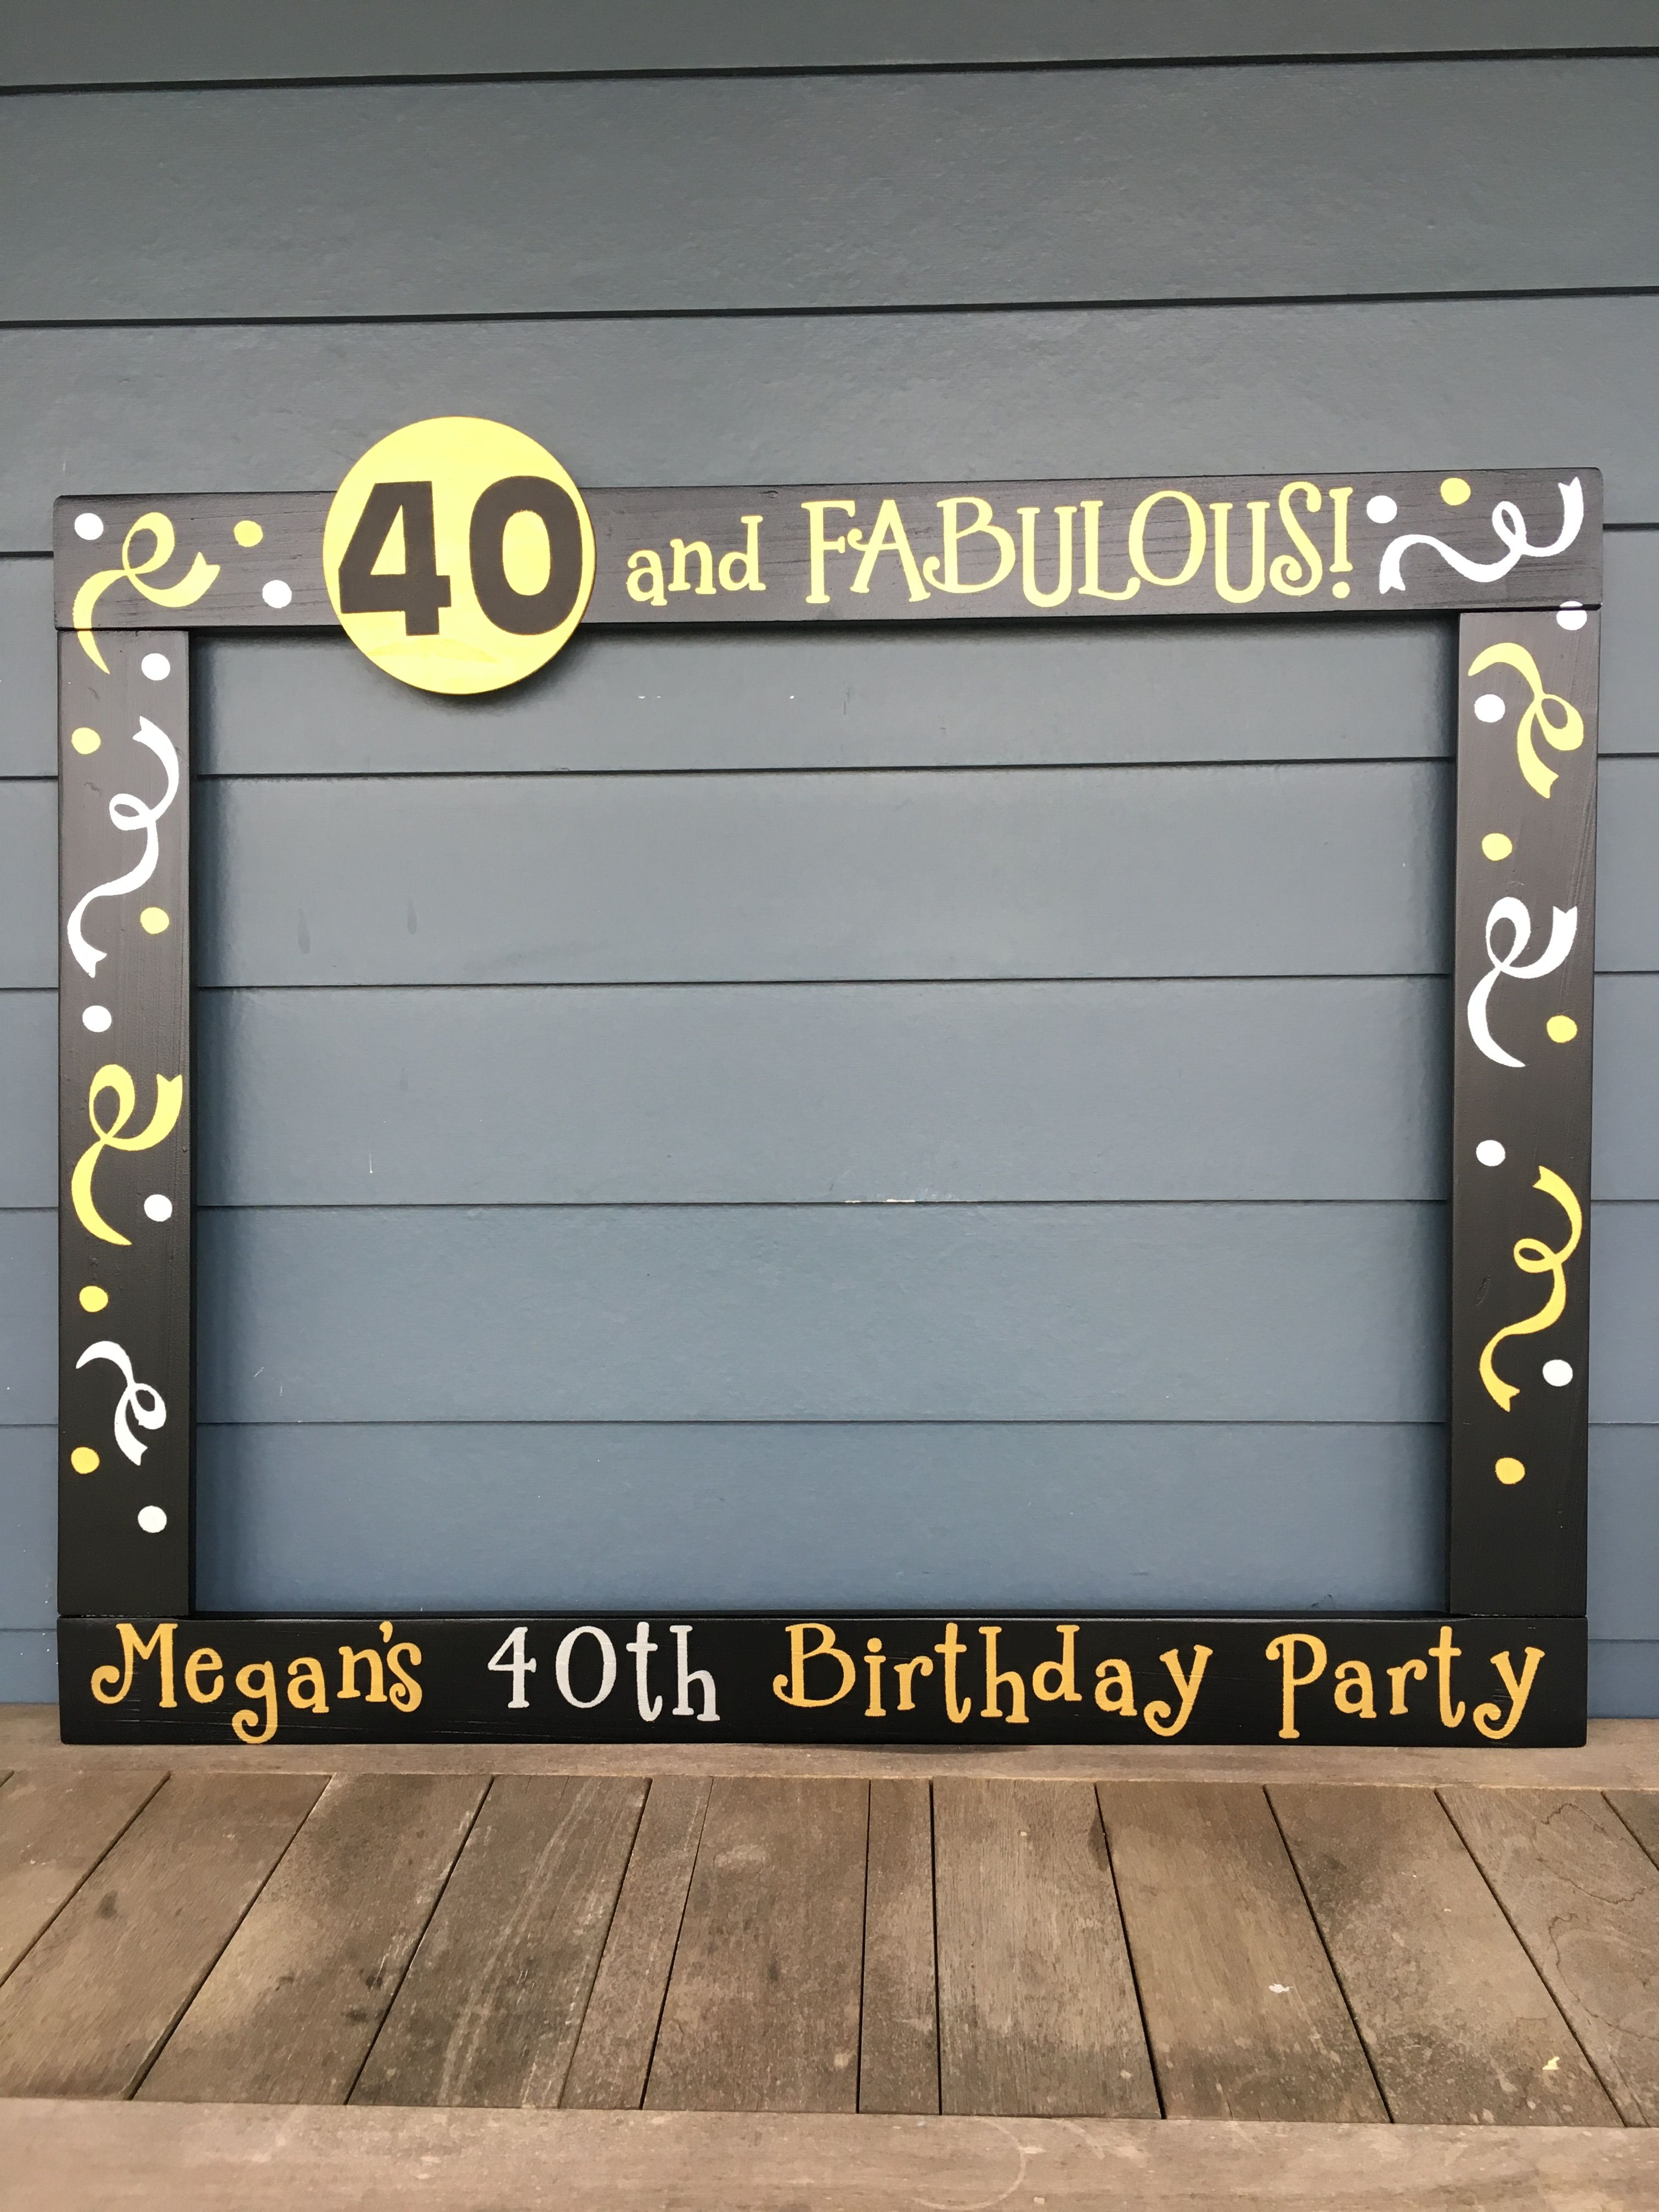 50th birthday party photo booth ideas ; 7aa145df7372168f500024a86771f792